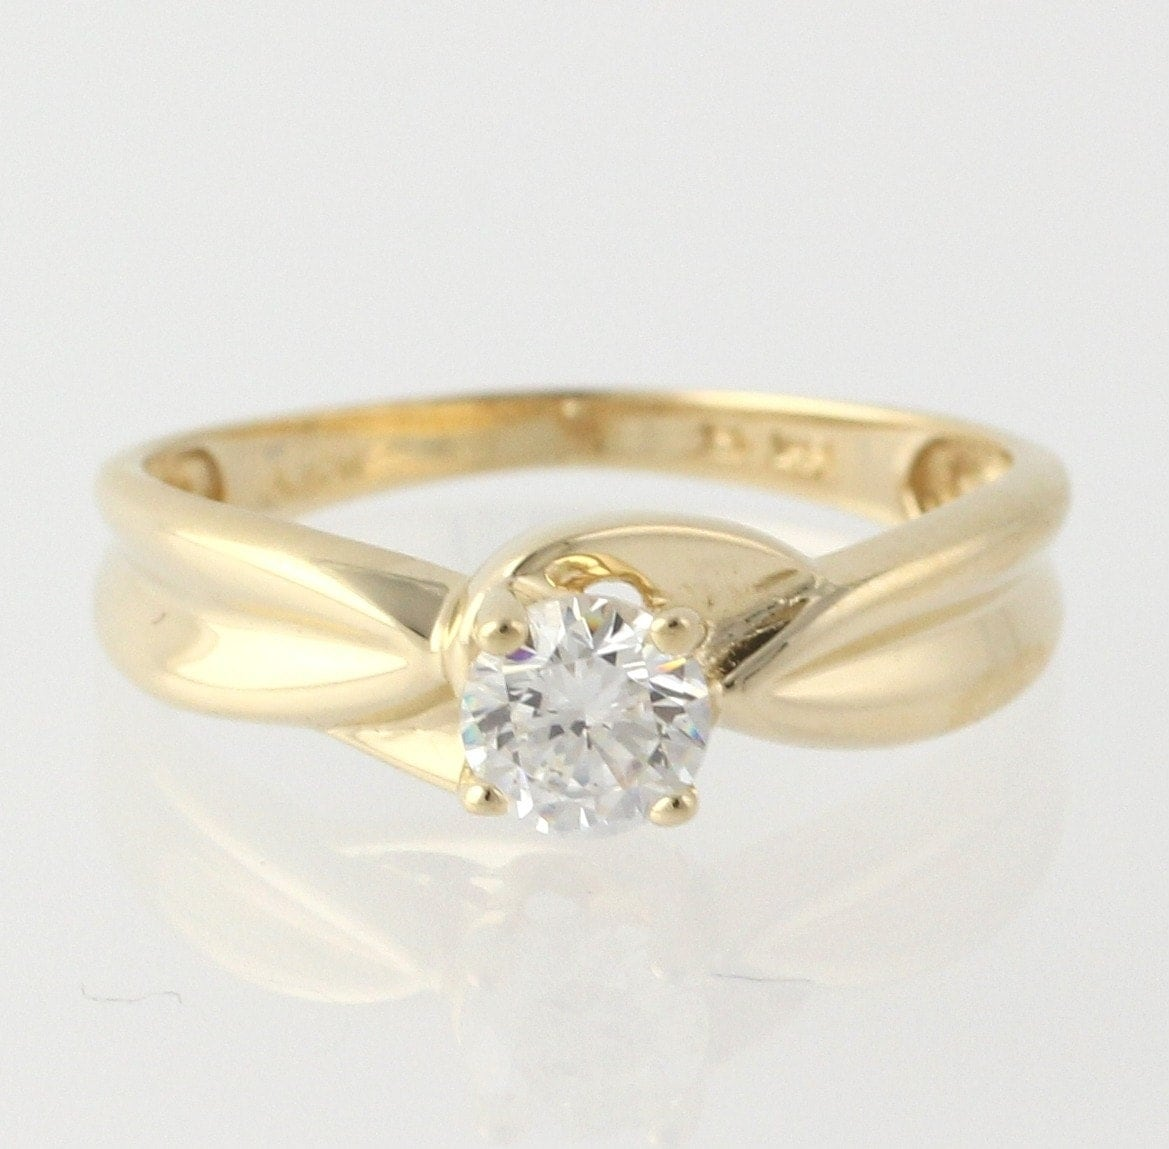 Engagement Ring Cubic Zirconia 14k Yellow Gold By WilsonBrothers